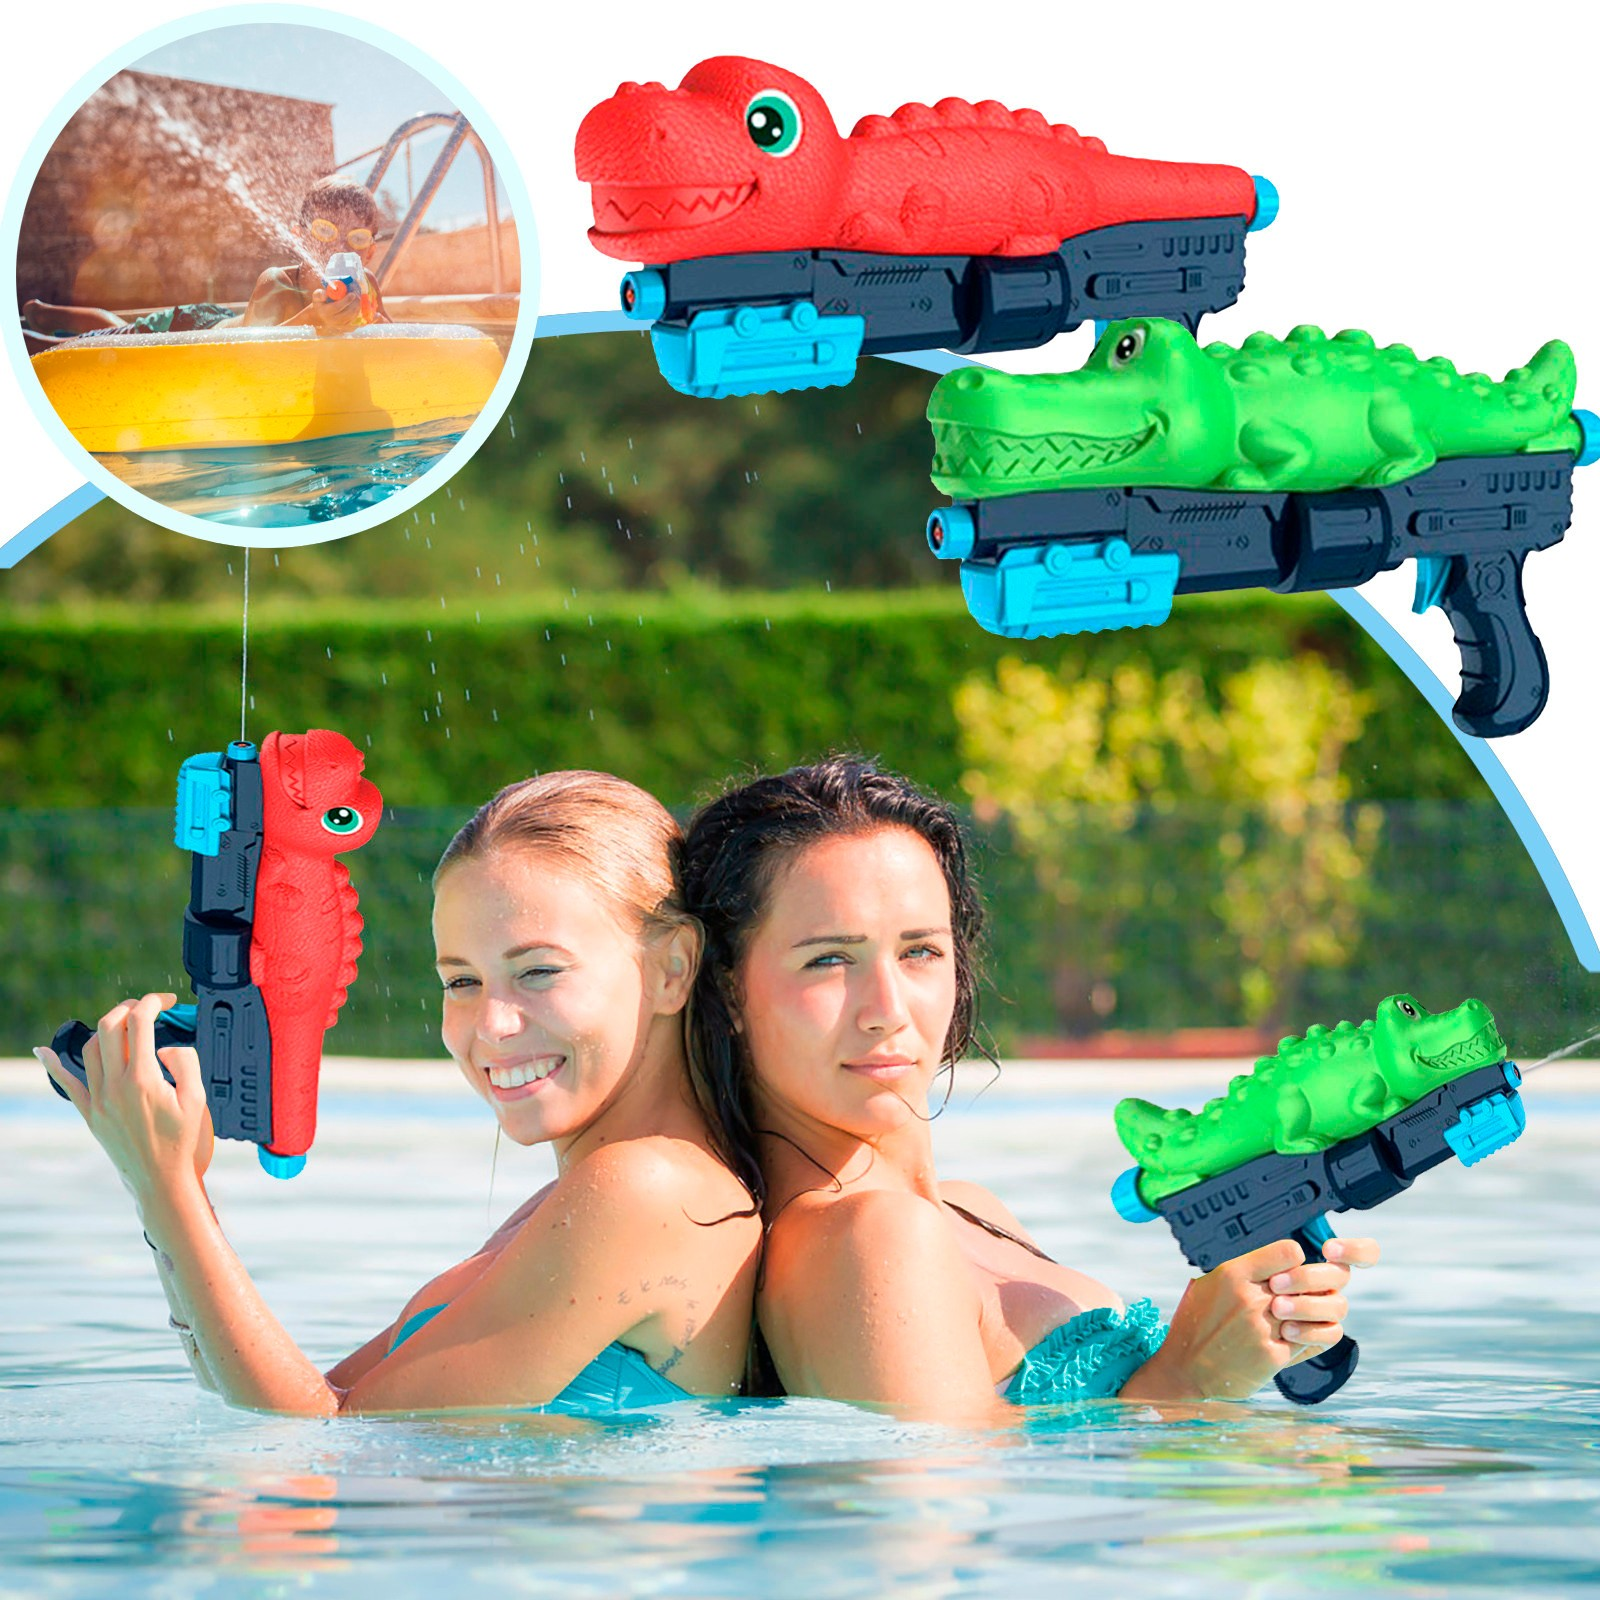 Summer Swimming Pool Dinosaur Water Guns Toy Games Educational Children's Indoor And Outdoor Water War And Water Sprayparty Toy